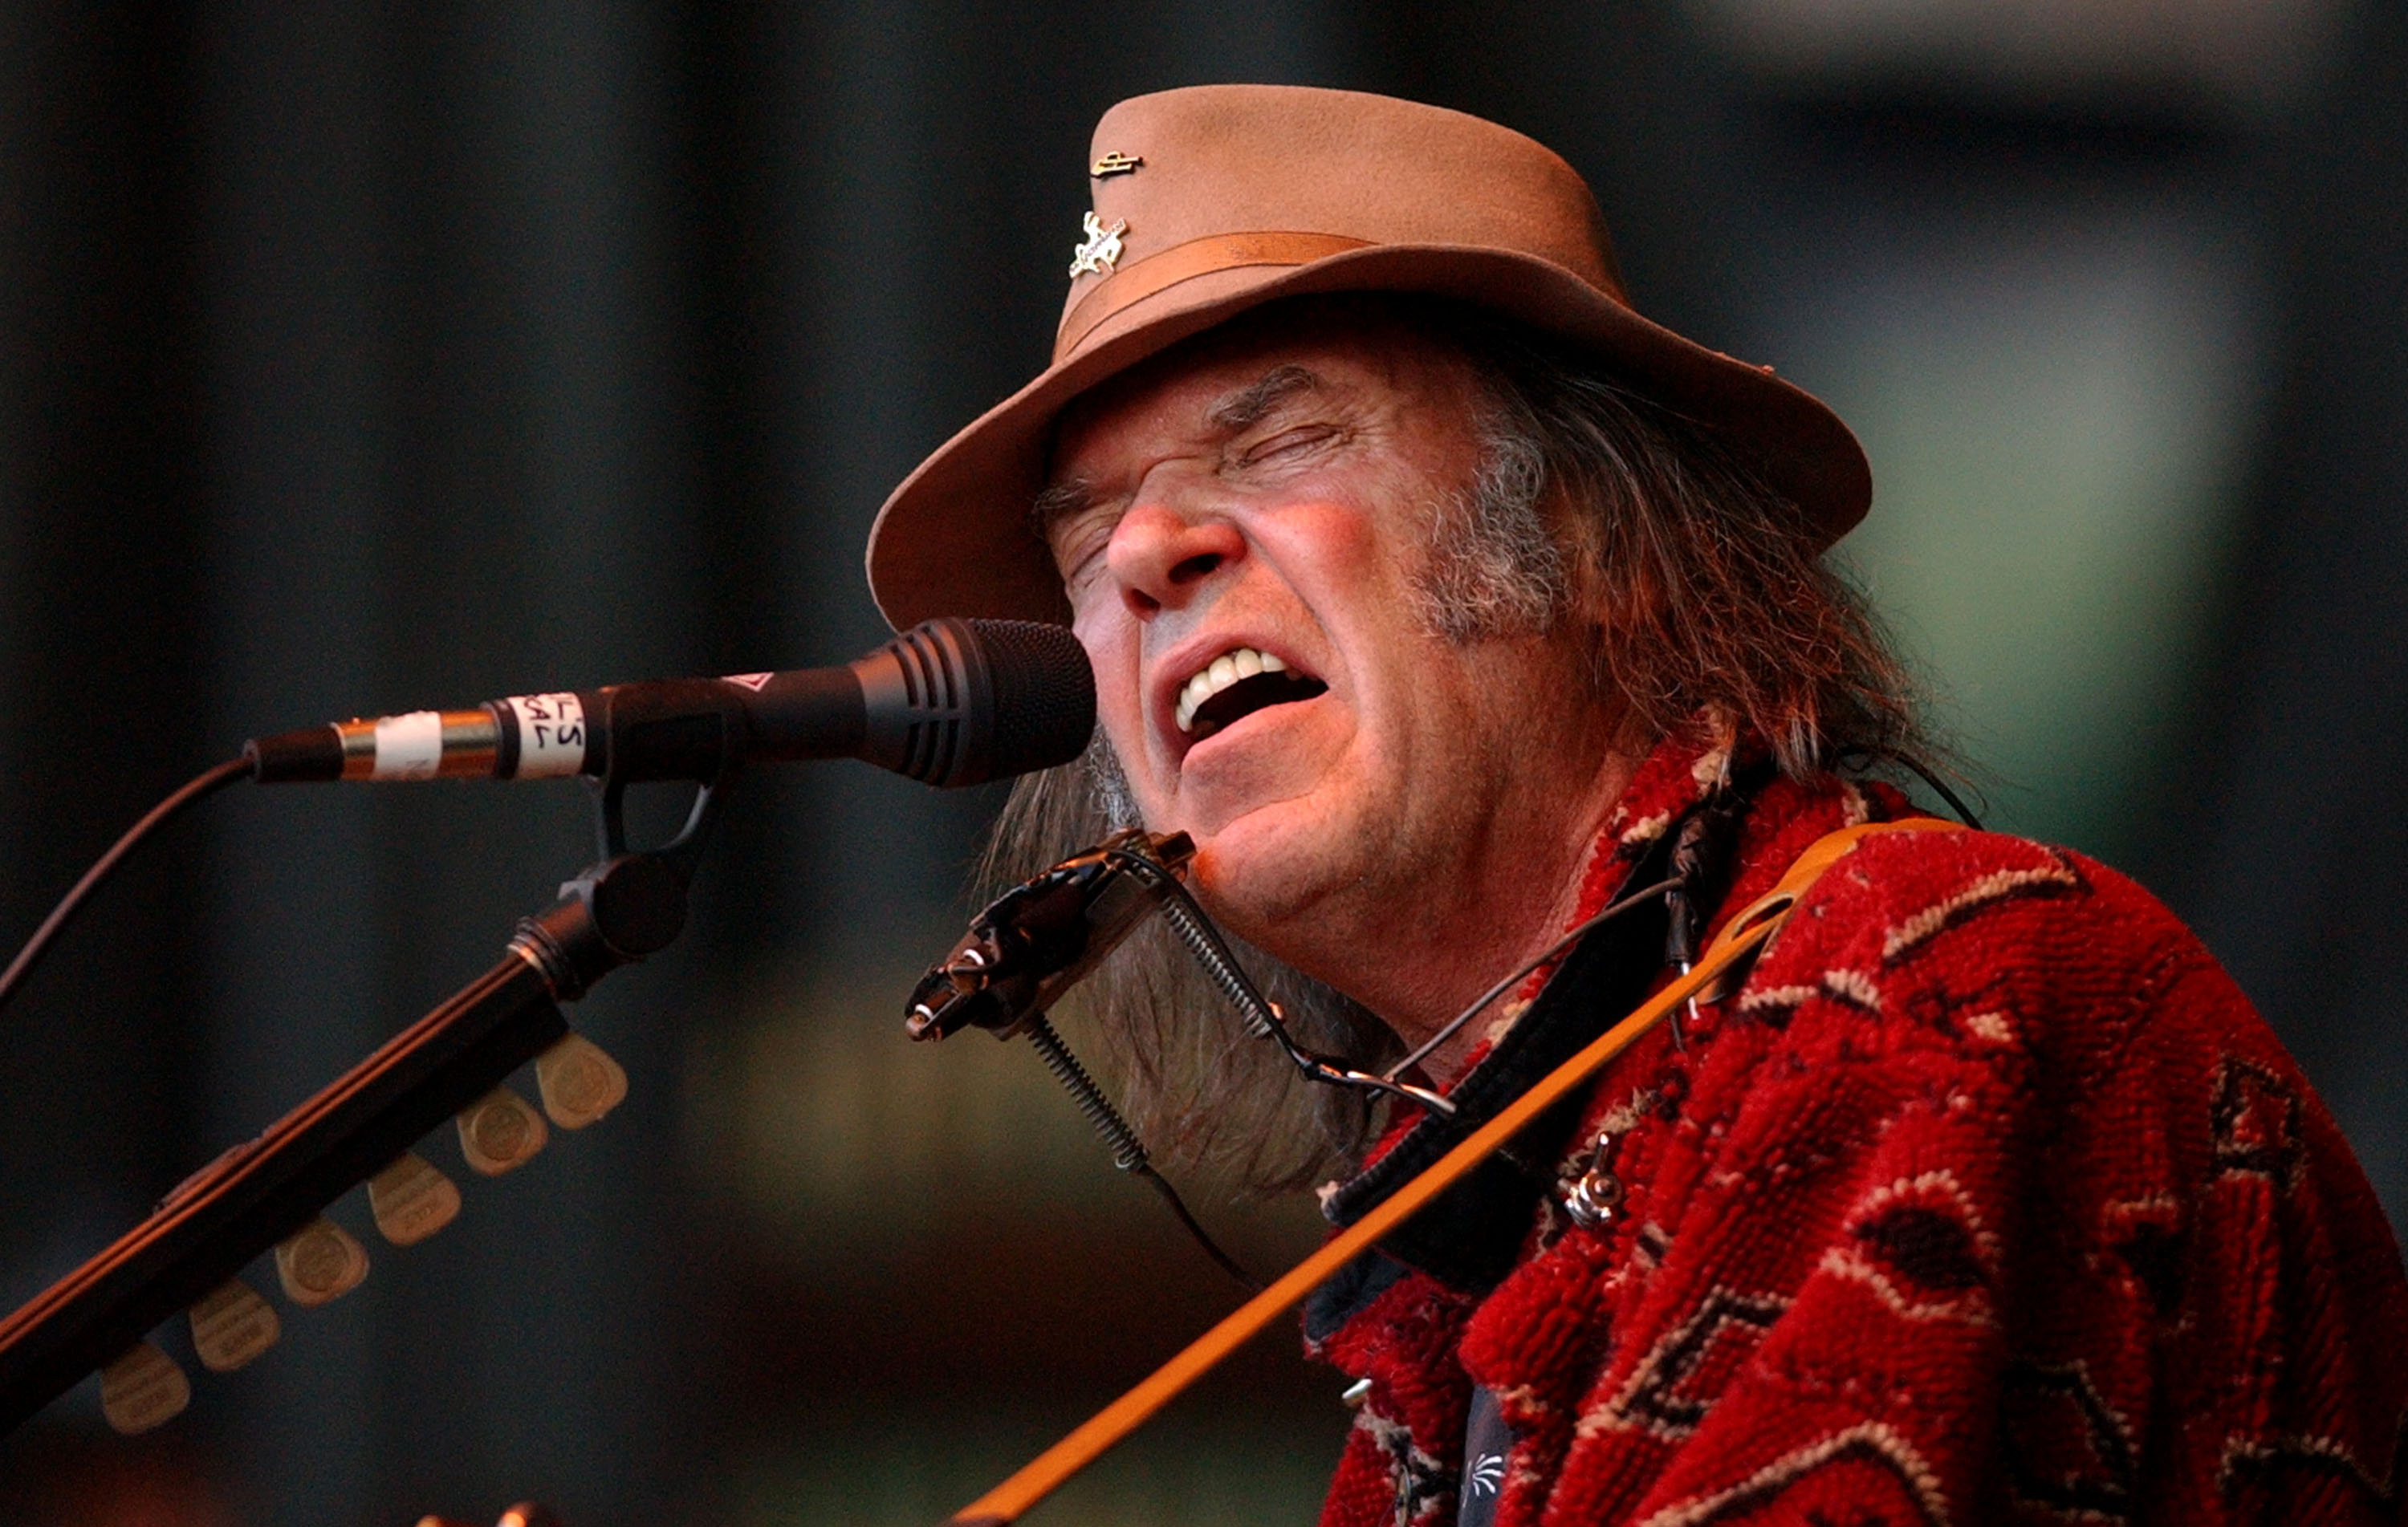 MOUNTAIN VIEW, CA - OCTOBER 26:  Singer Neil Young performs at the 16th annunal Bridge School benefit concert October 26, 2002 in  Mountain View, California. (Photo by Justin Sullivan/Getty Images)